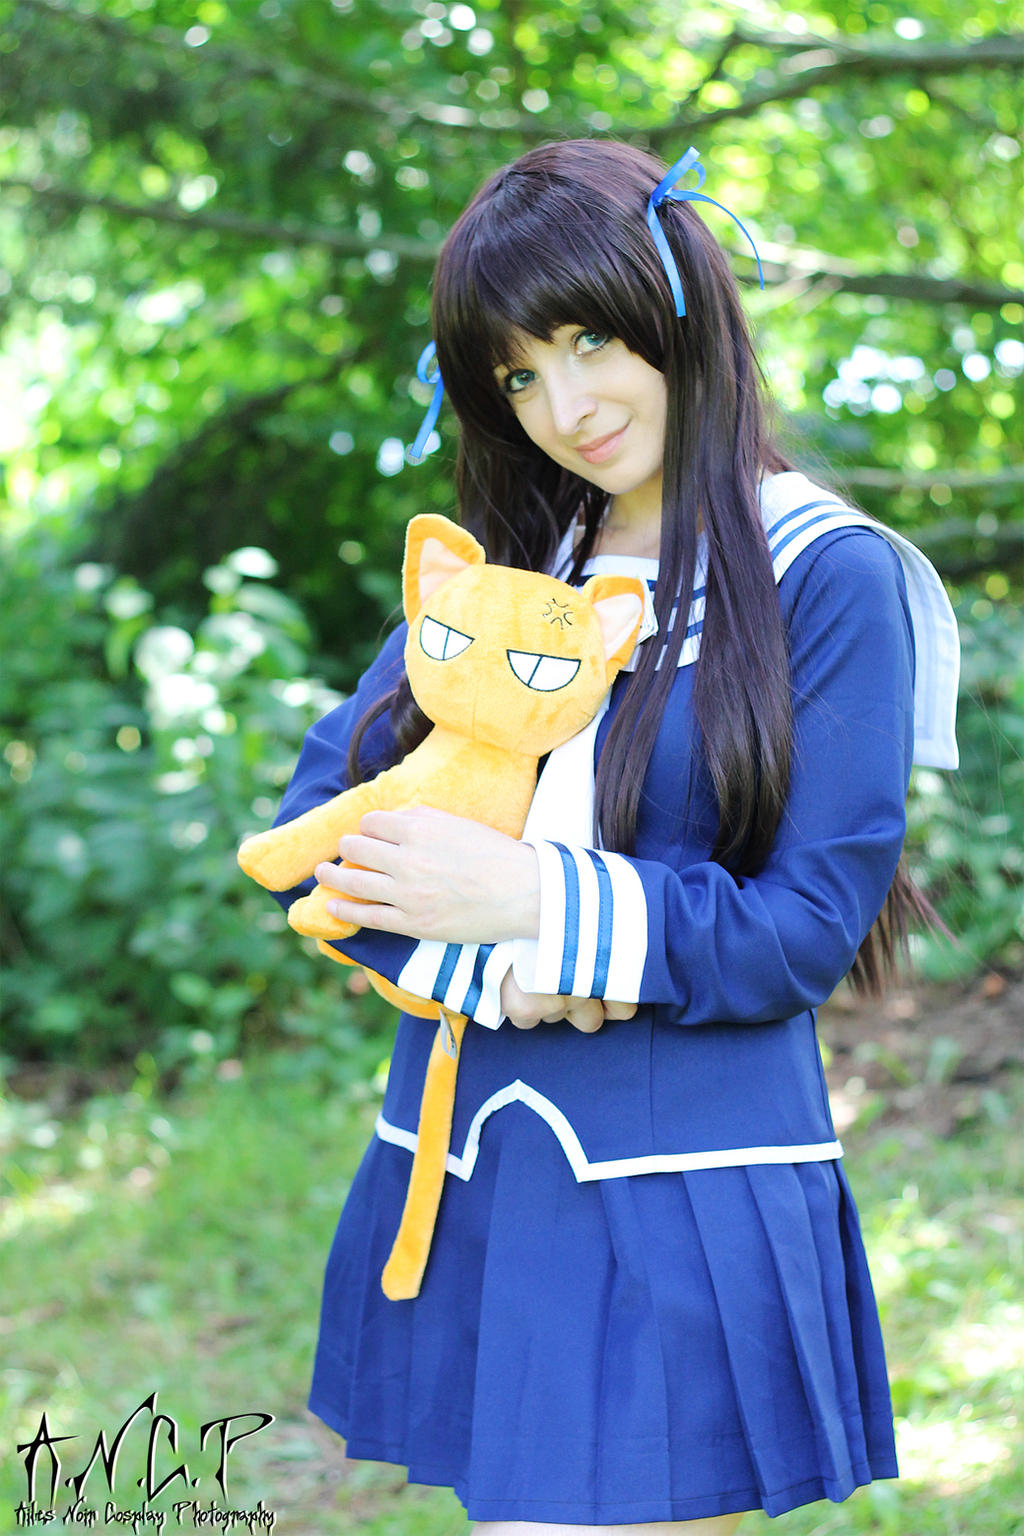 Fruits Basket #8: Tohru Honda by AilesNoir on DeviantArt Tohru Fruits Basket Outfits